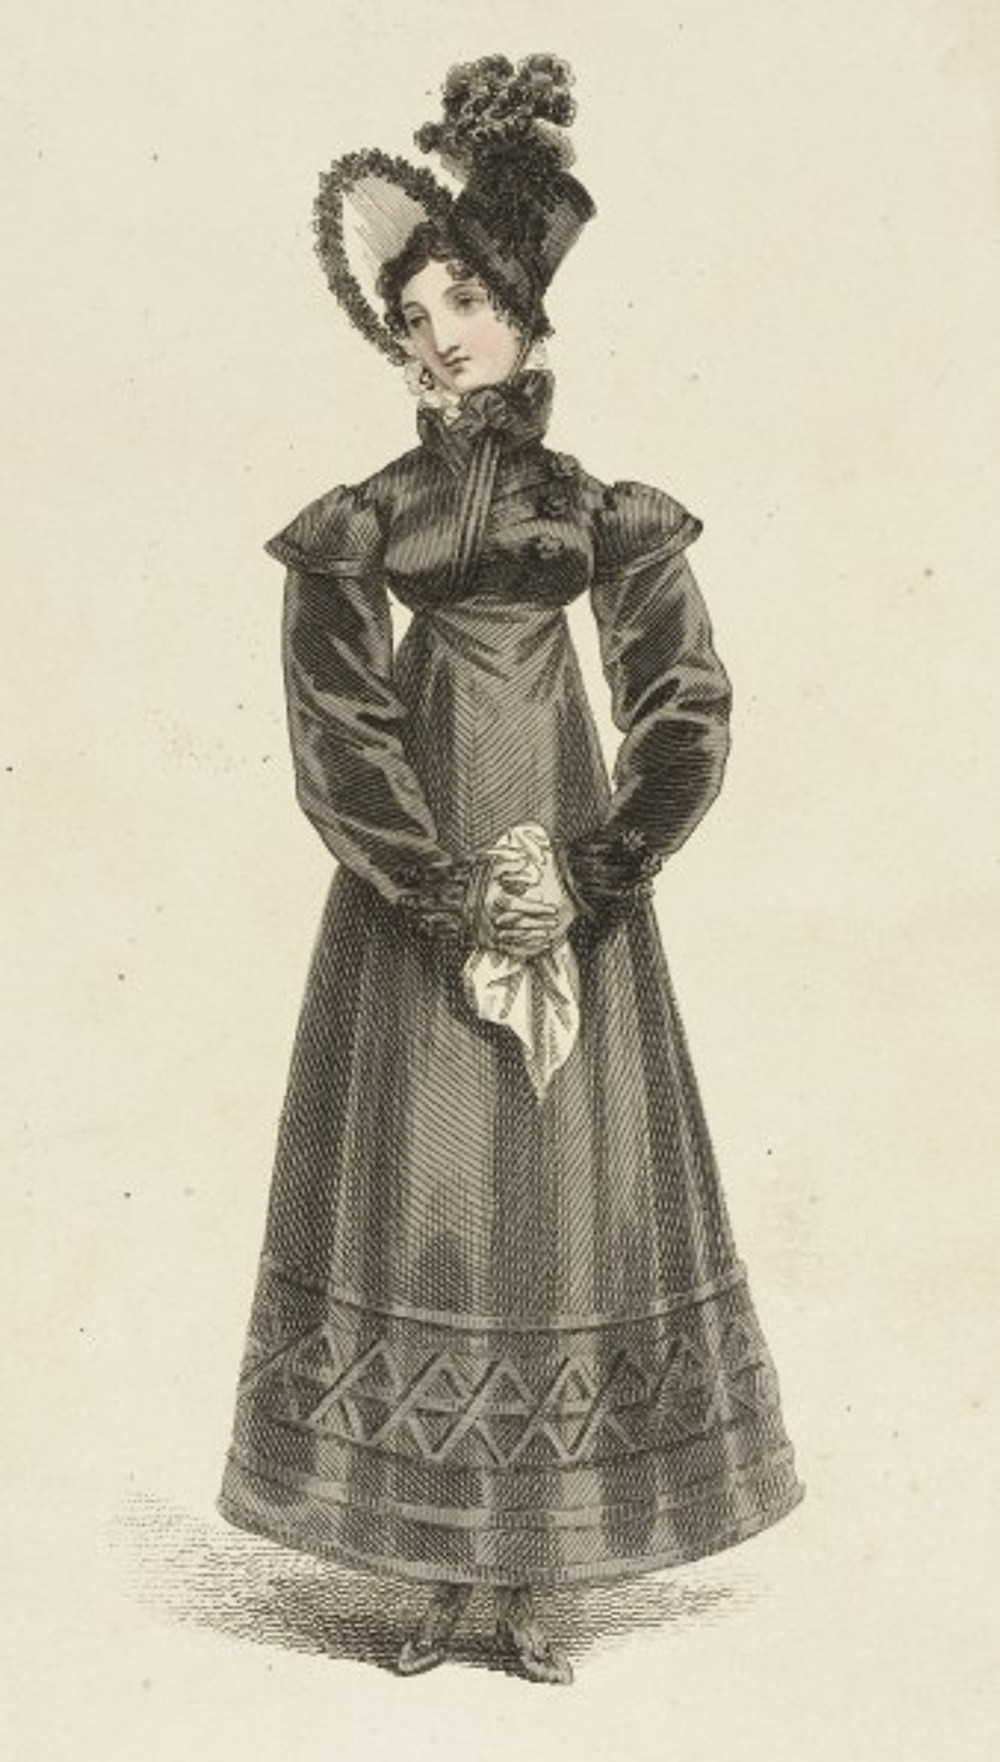 Mourning Fashion plate by Rudolph Ackerman 1817 (Los Angeles County Museum of Art)